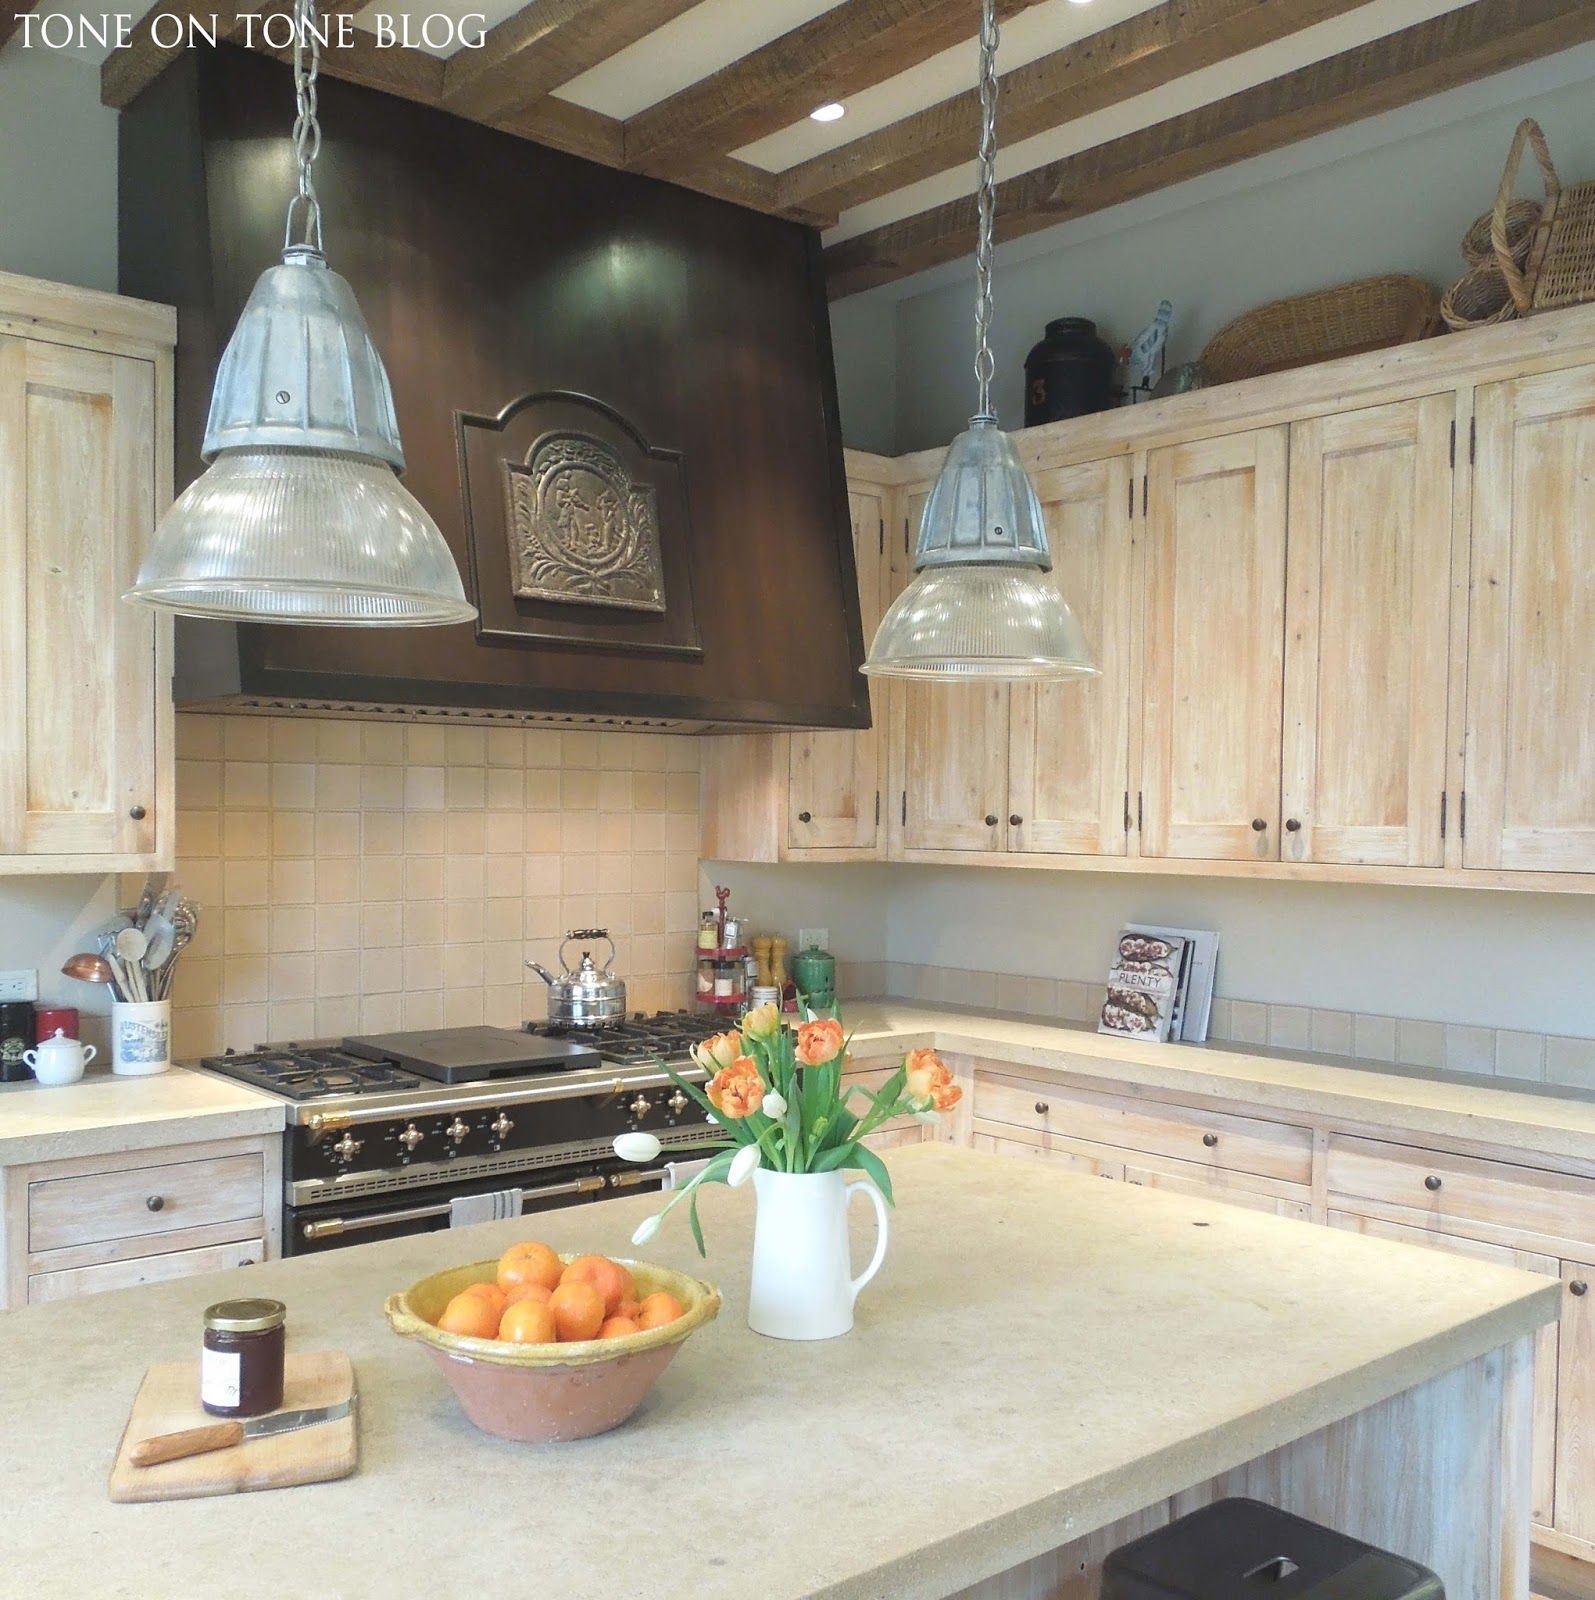 White Stain Kitchen Cabinets: Tone On Tone: French Style Family Kitchen